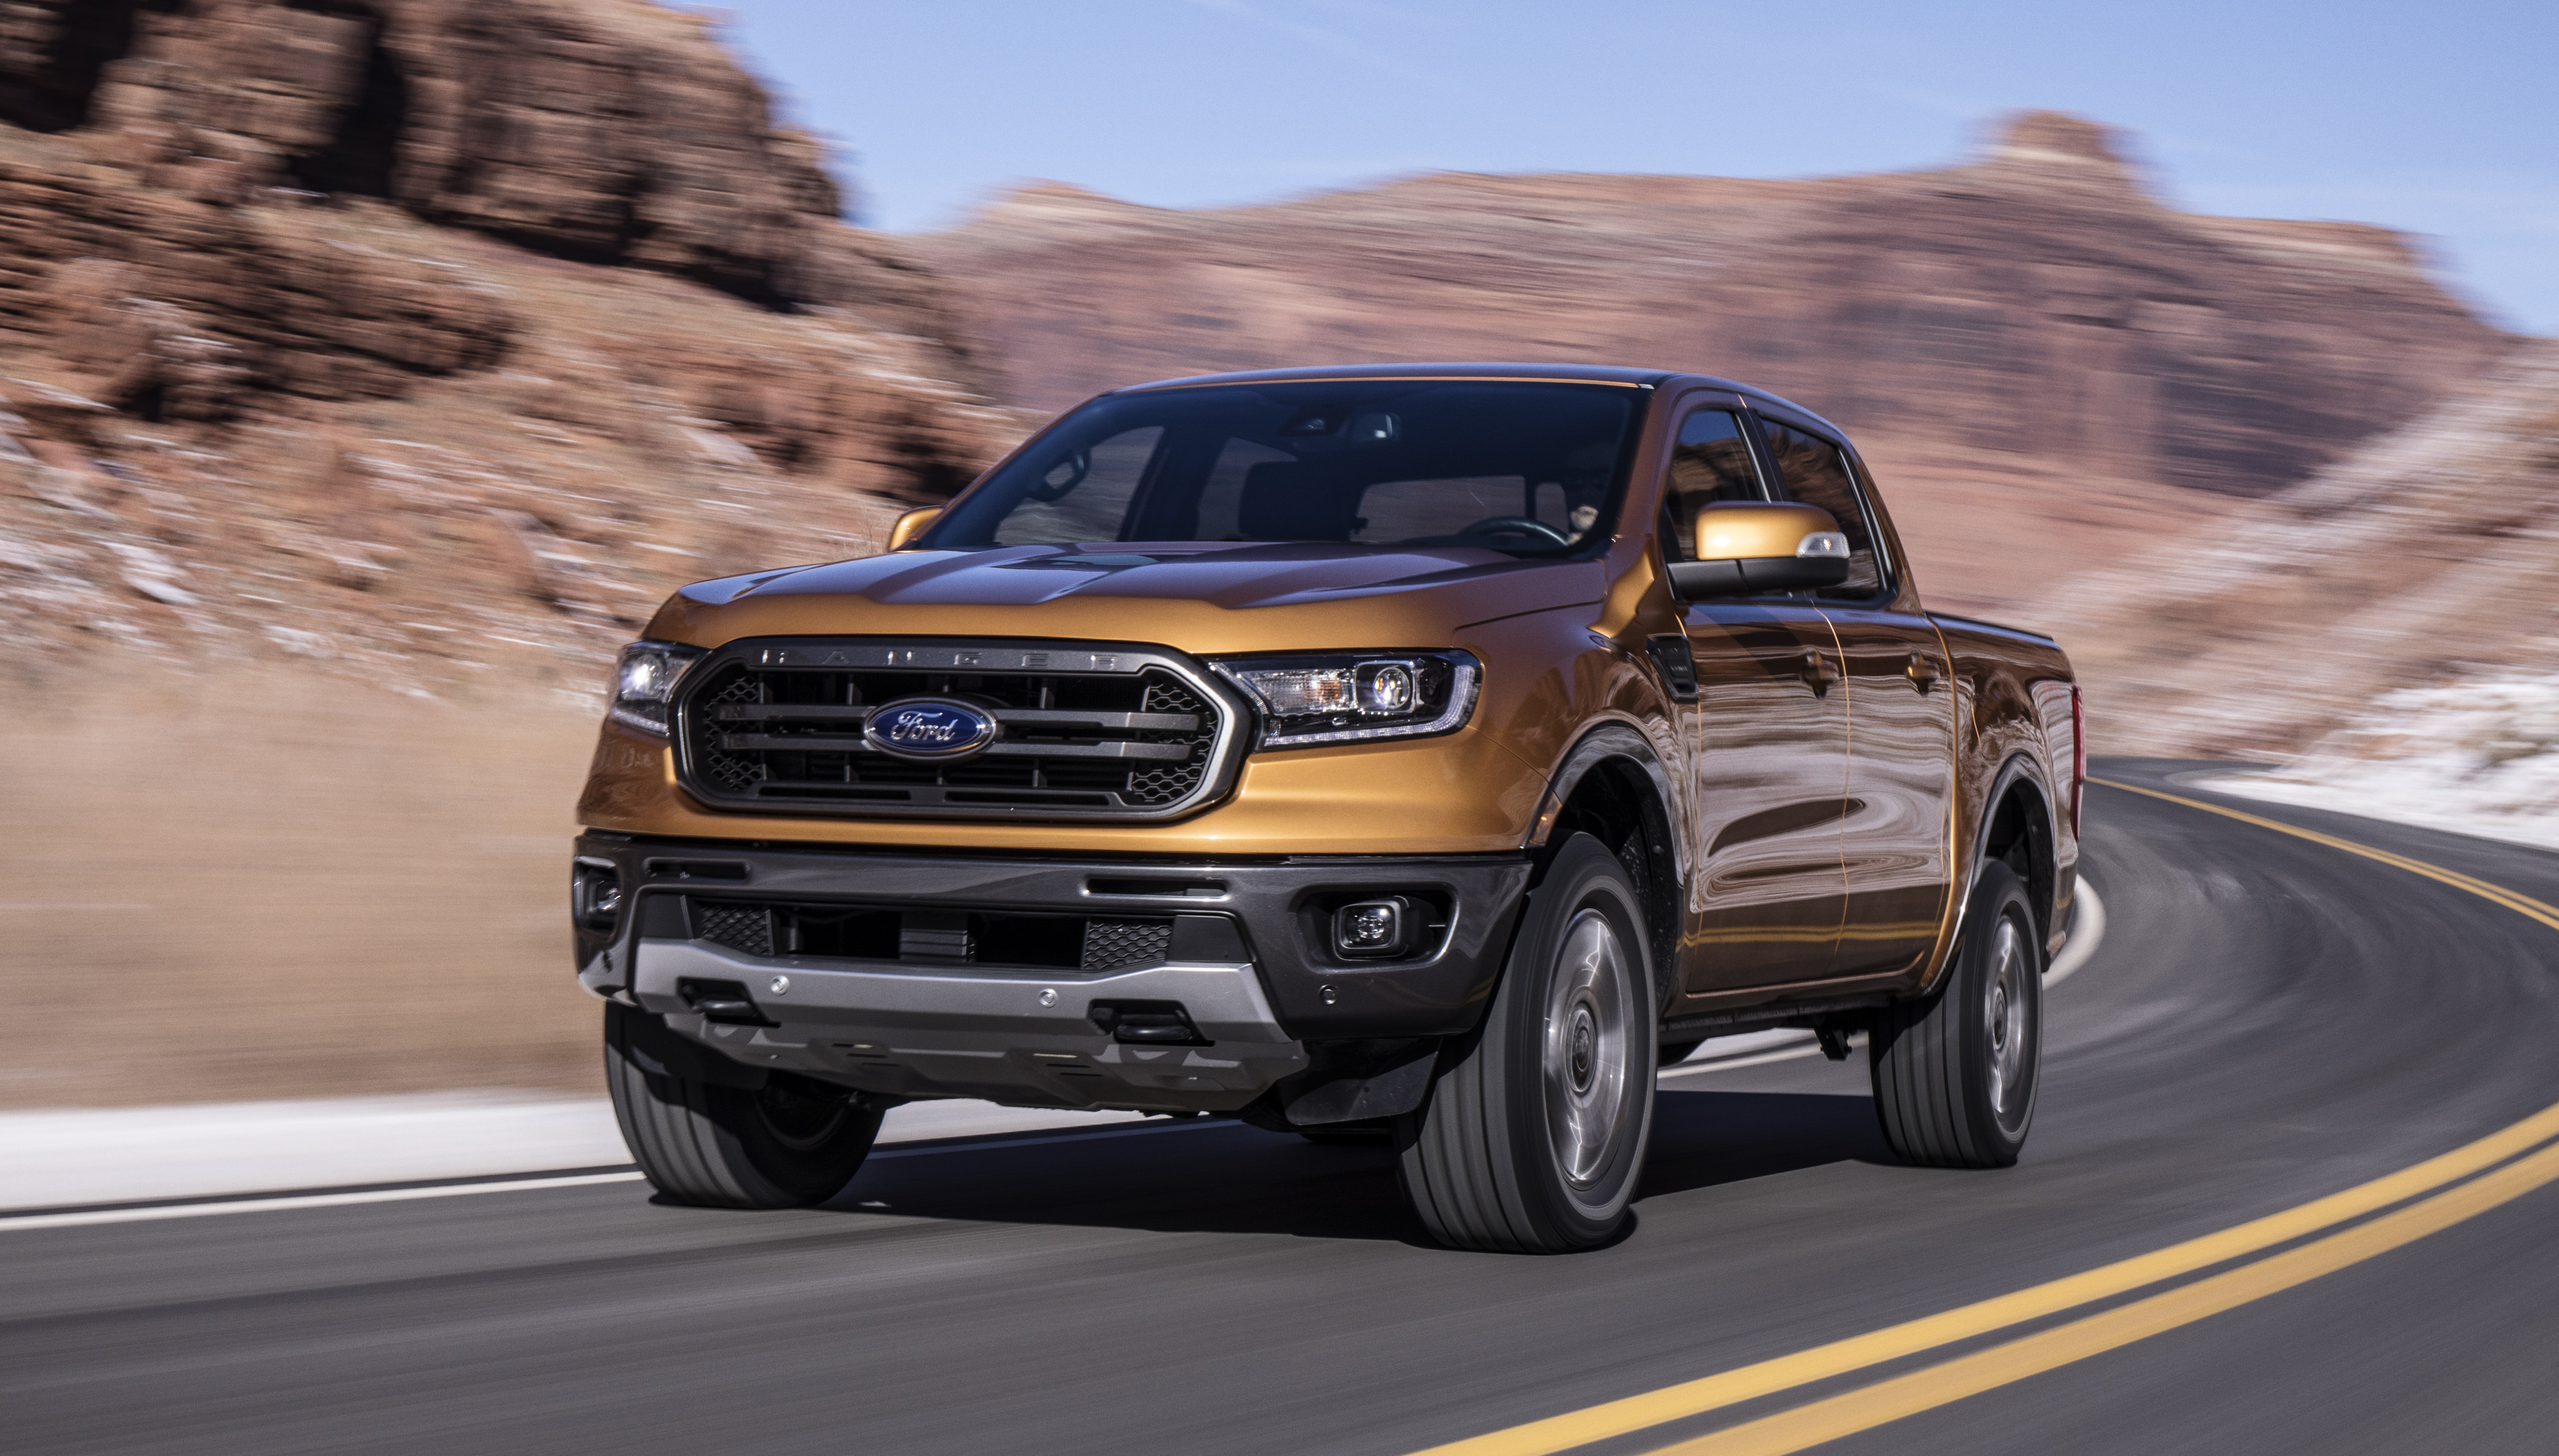 2019 Ford Ranger revealed for North America - Photos